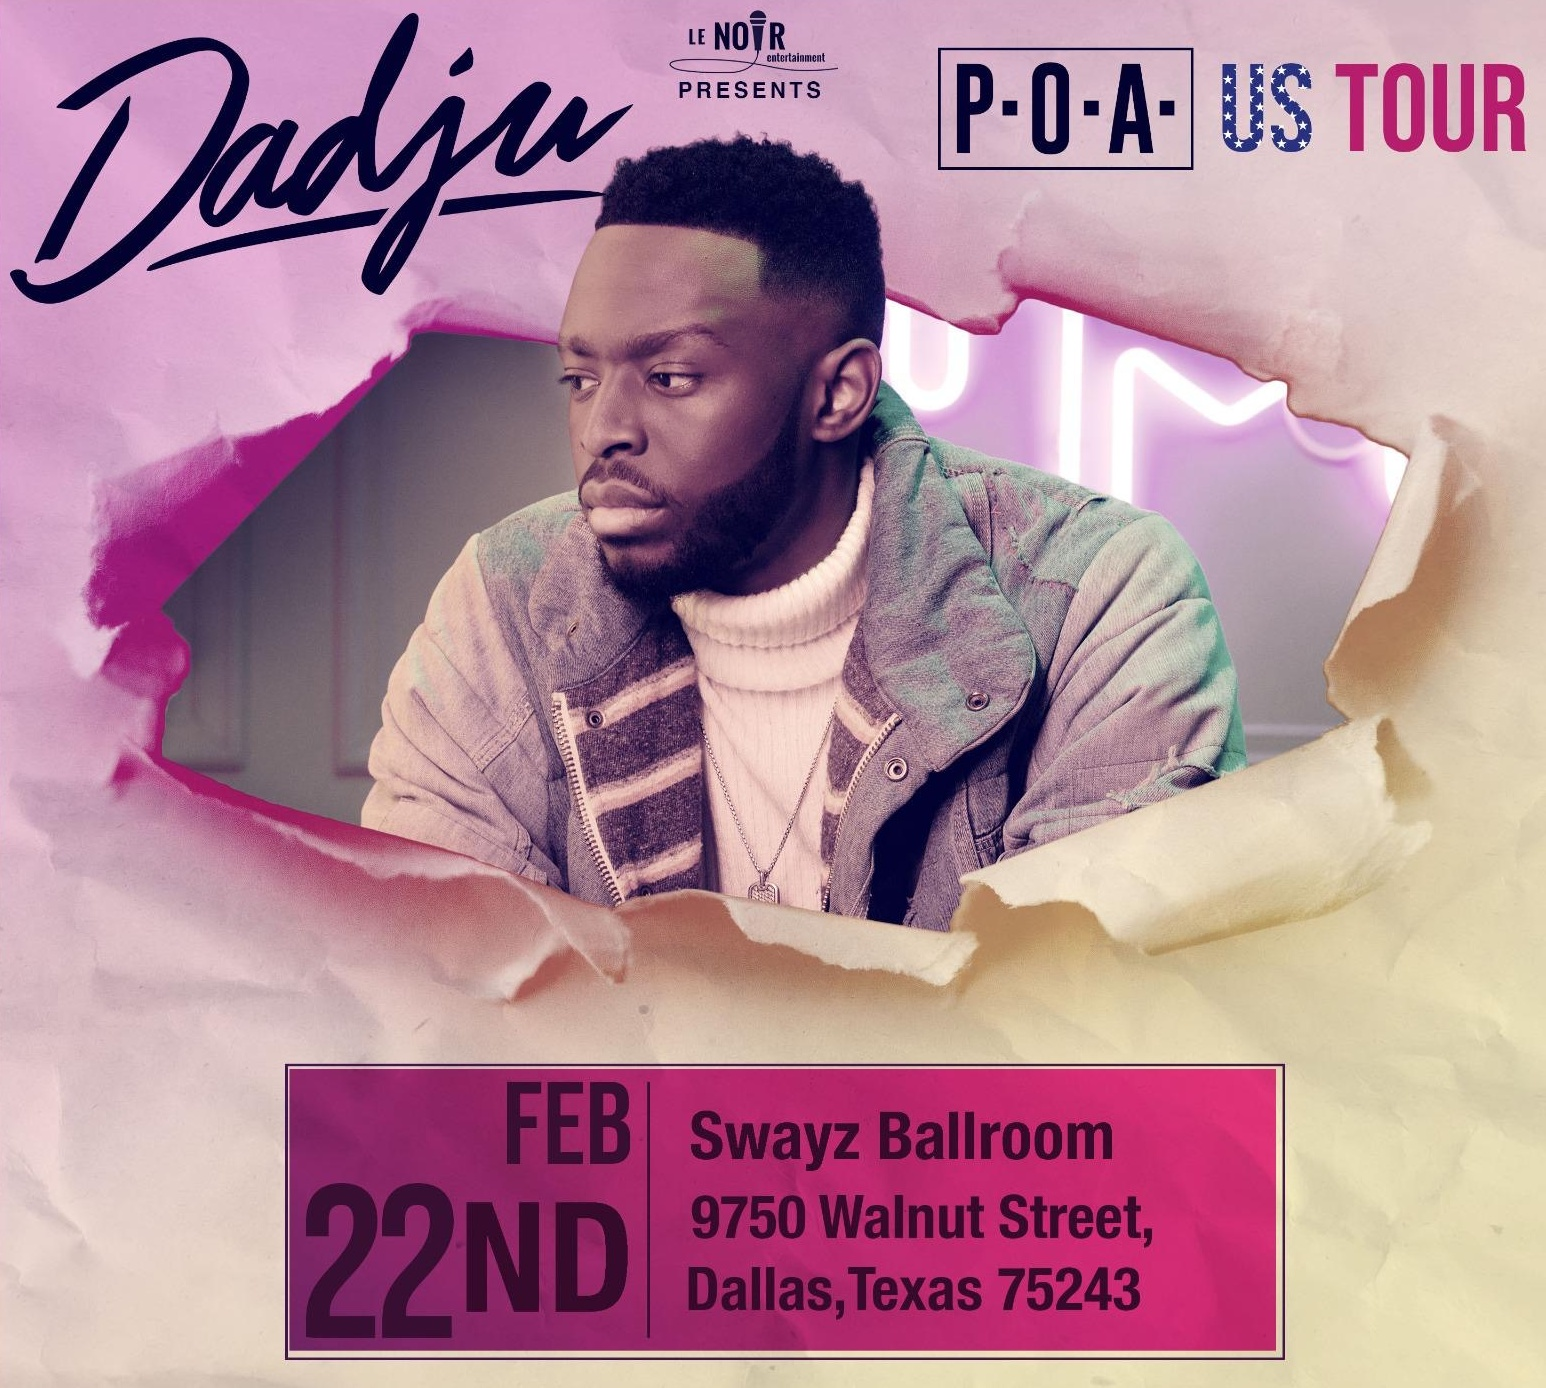 Dadju P.O.A TOUR Dallas, Texas